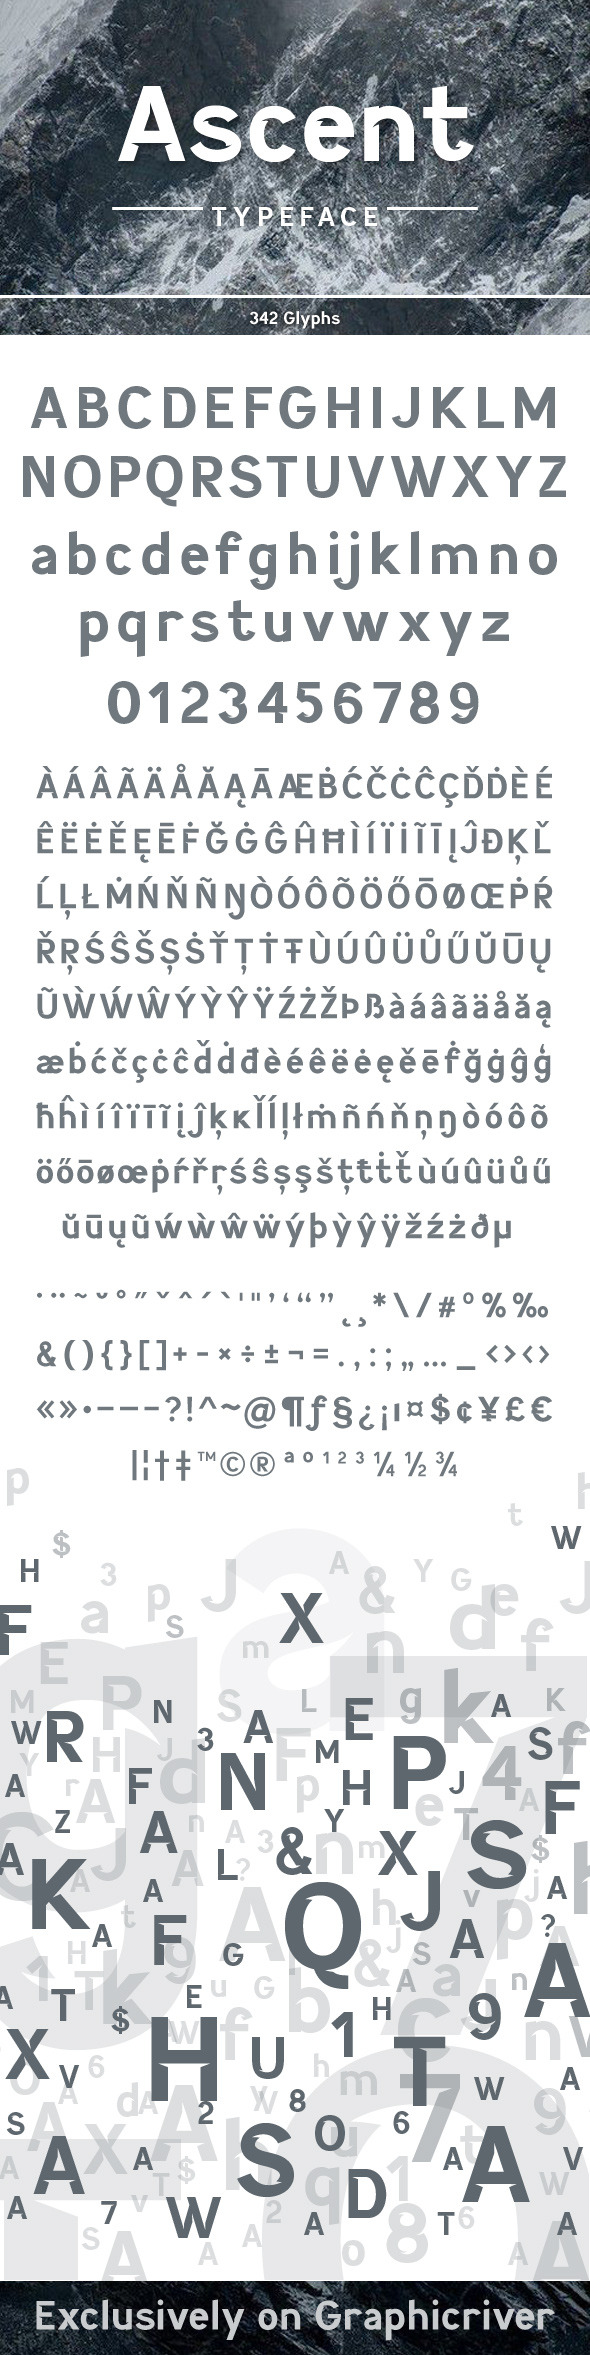 GraphicRiver Ascent Typeface 9929760